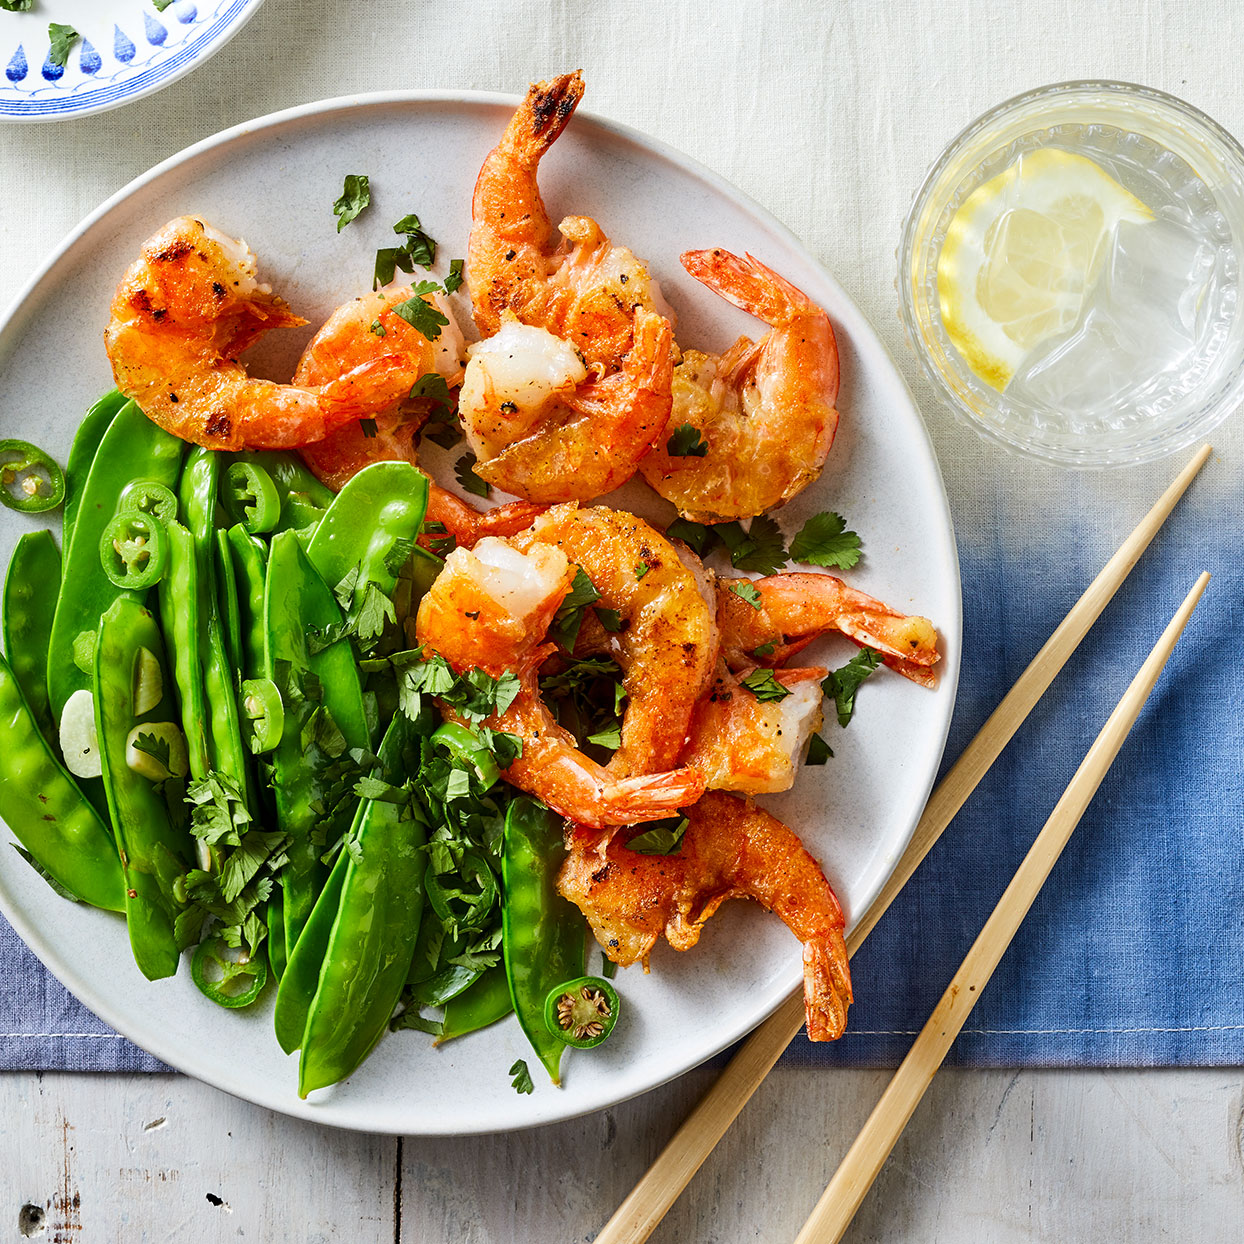 Salt & Pepper Shrimp with Snow Peas